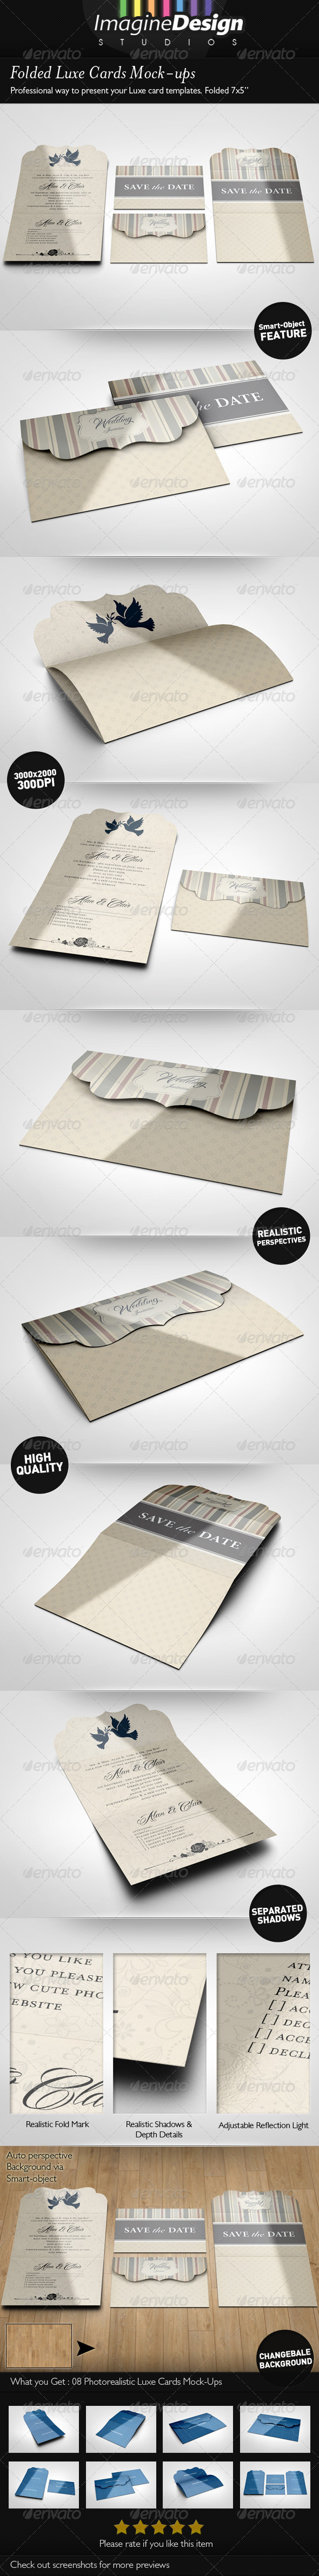 GraphicRiver Folded Luxe Cards Mock-ups 5670308